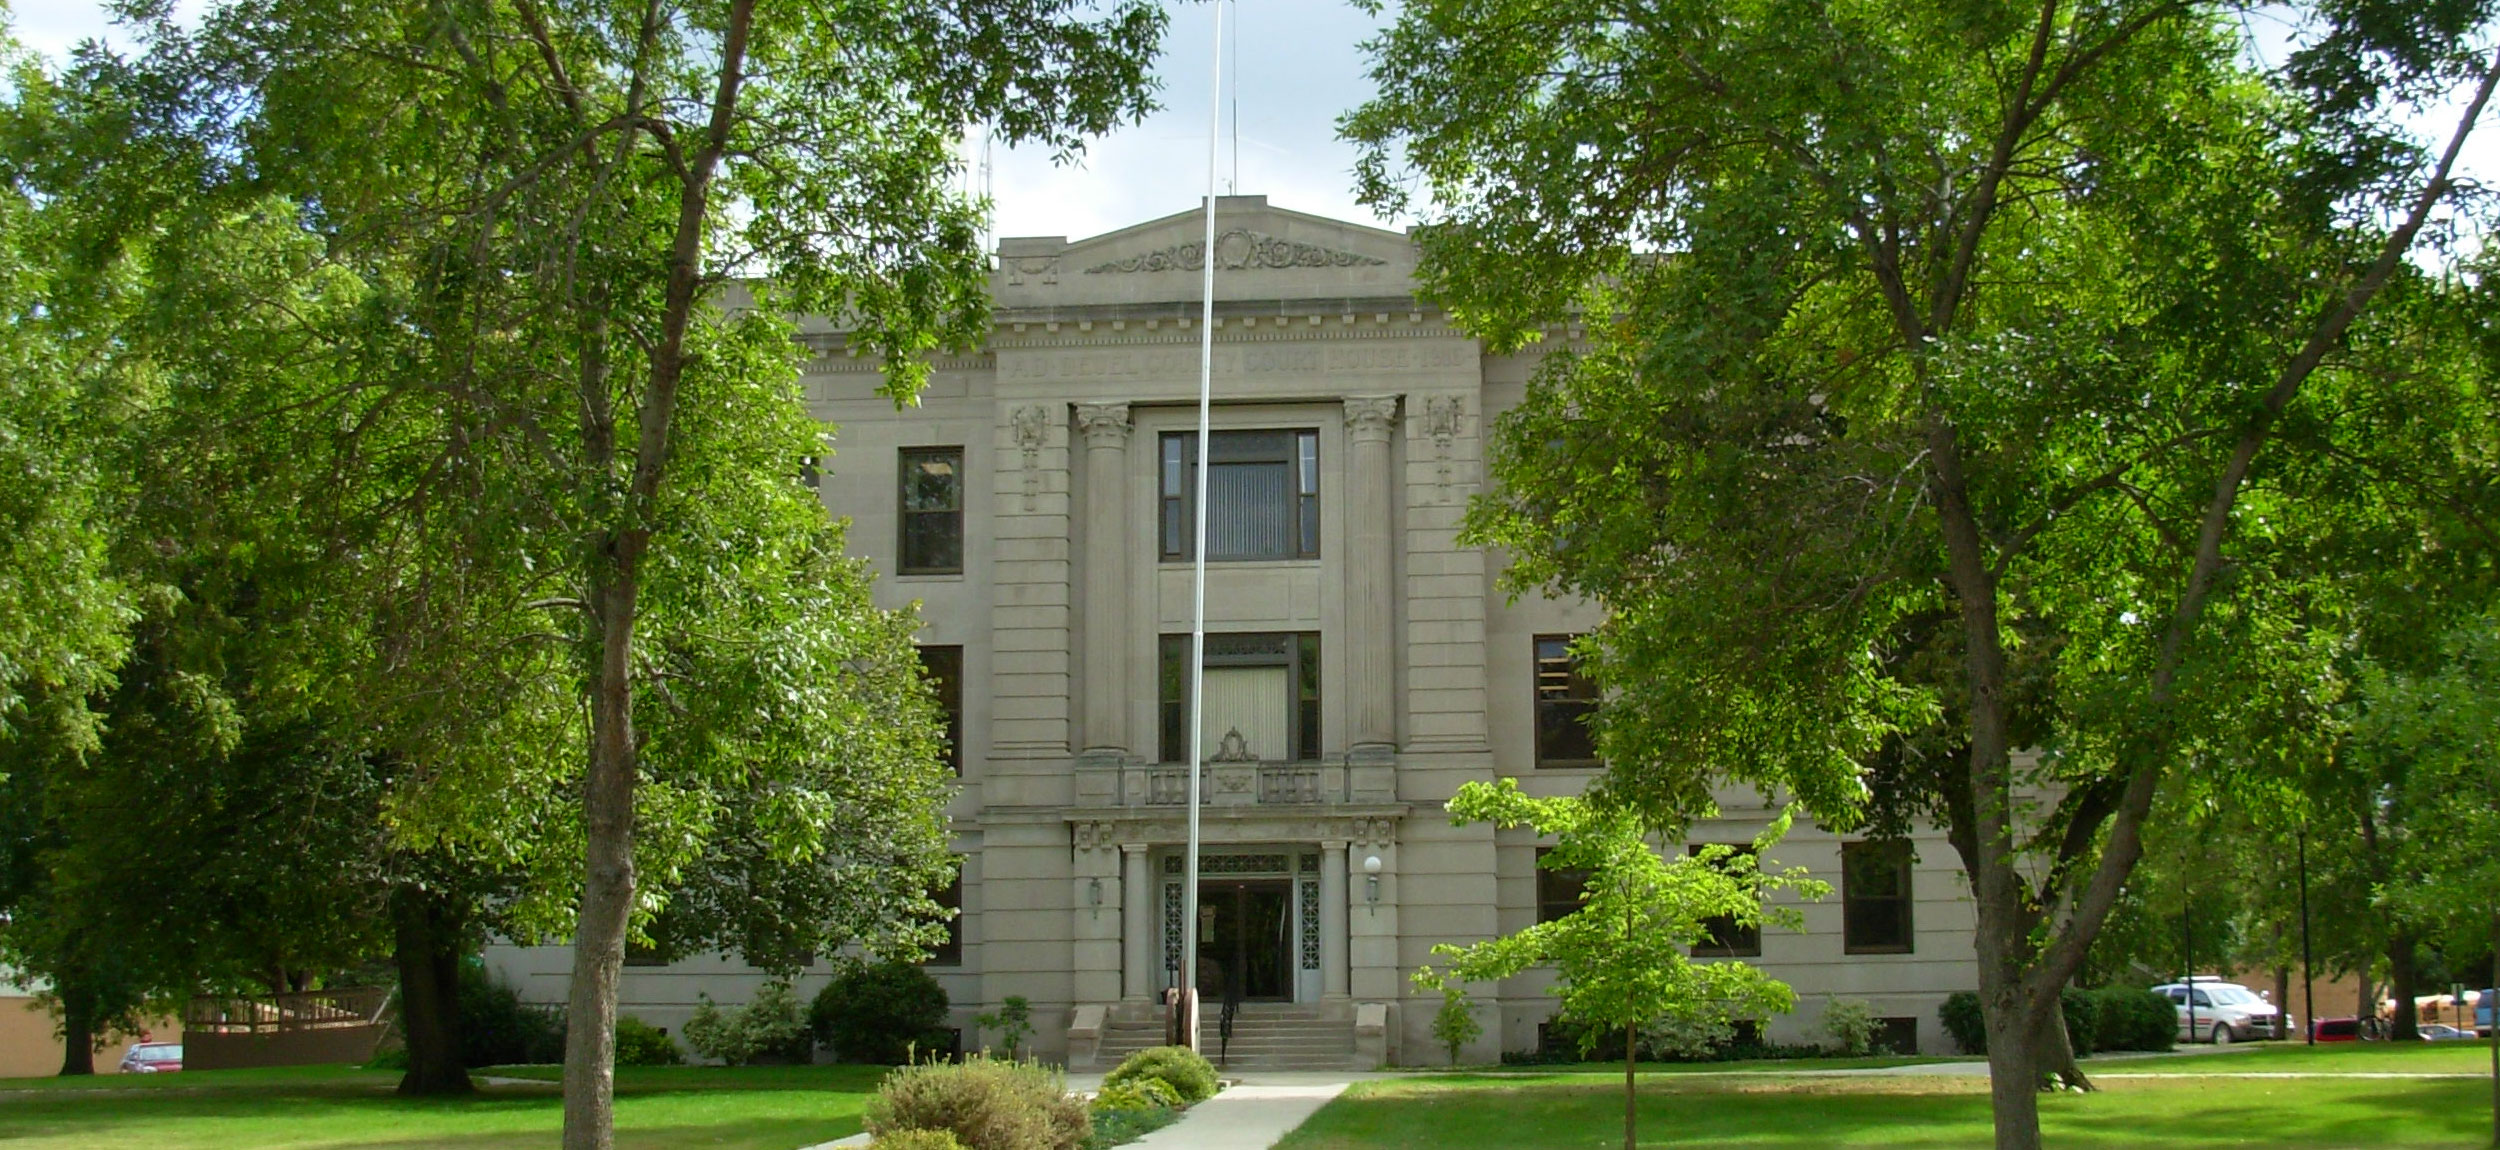 Deuel County Courthouse